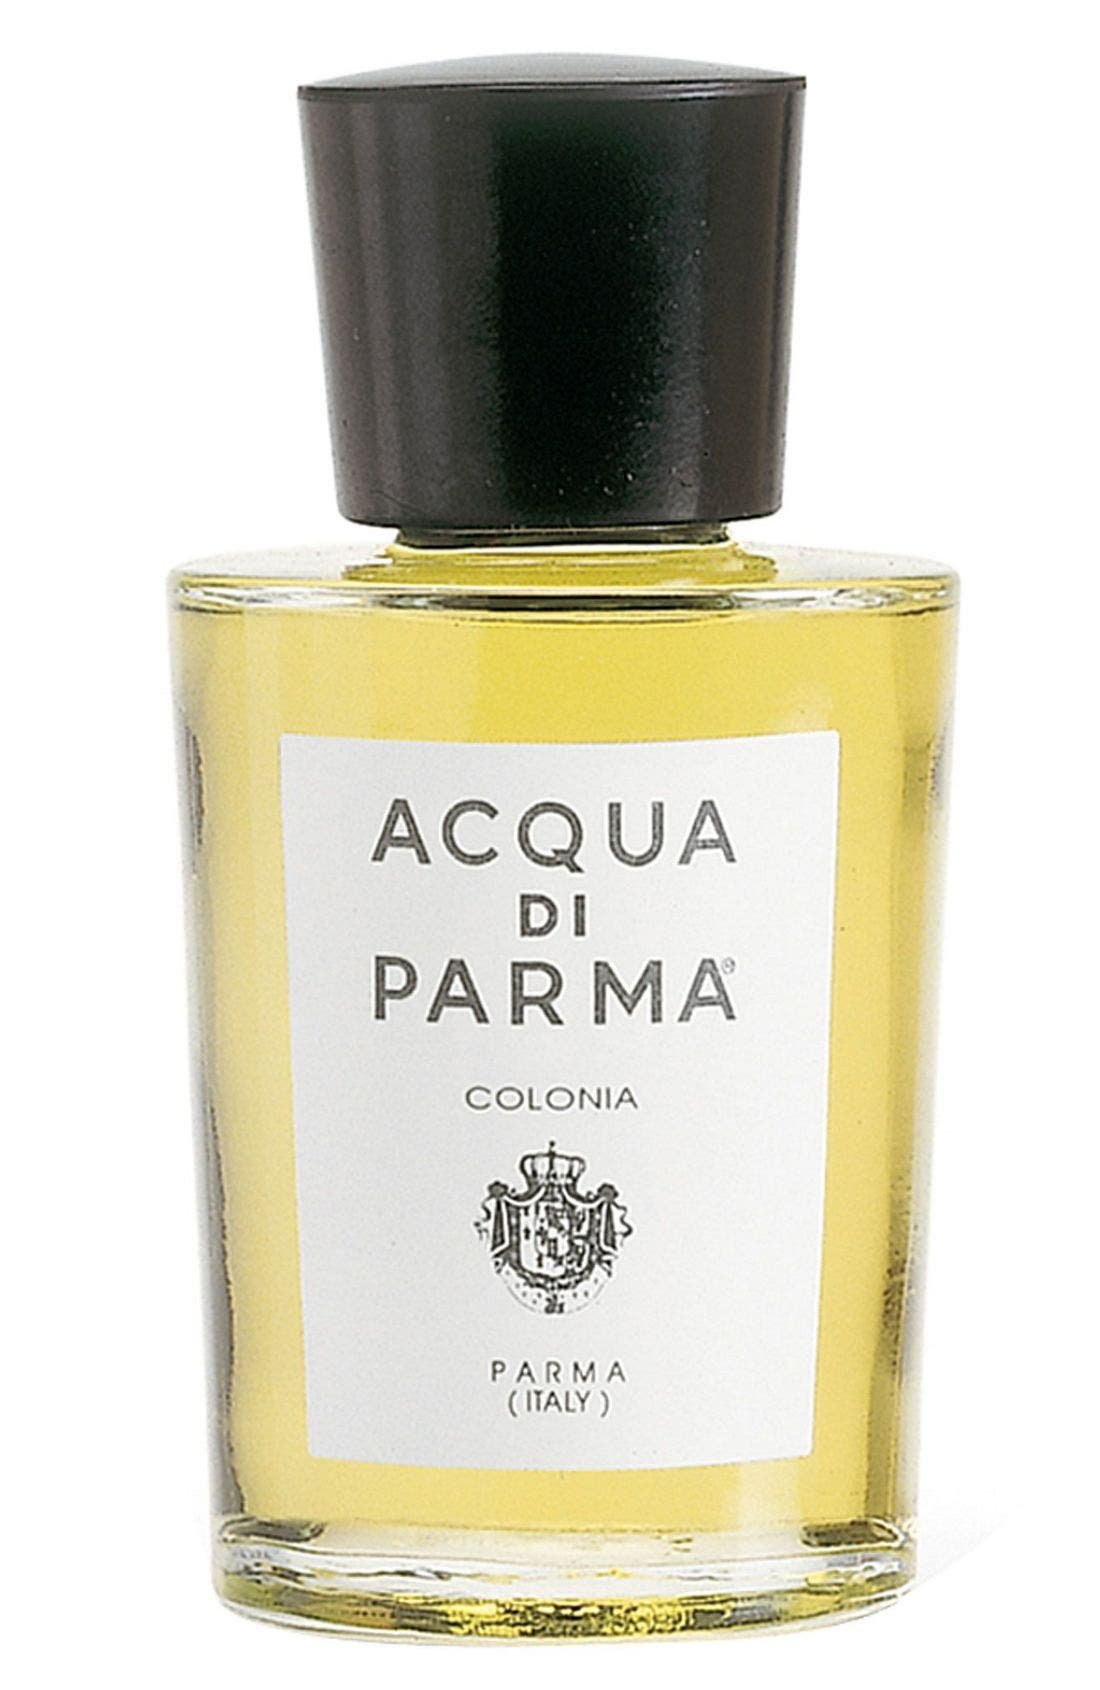 Acqua di Parma 'Colonia' Eau de Cologne Natural Spray